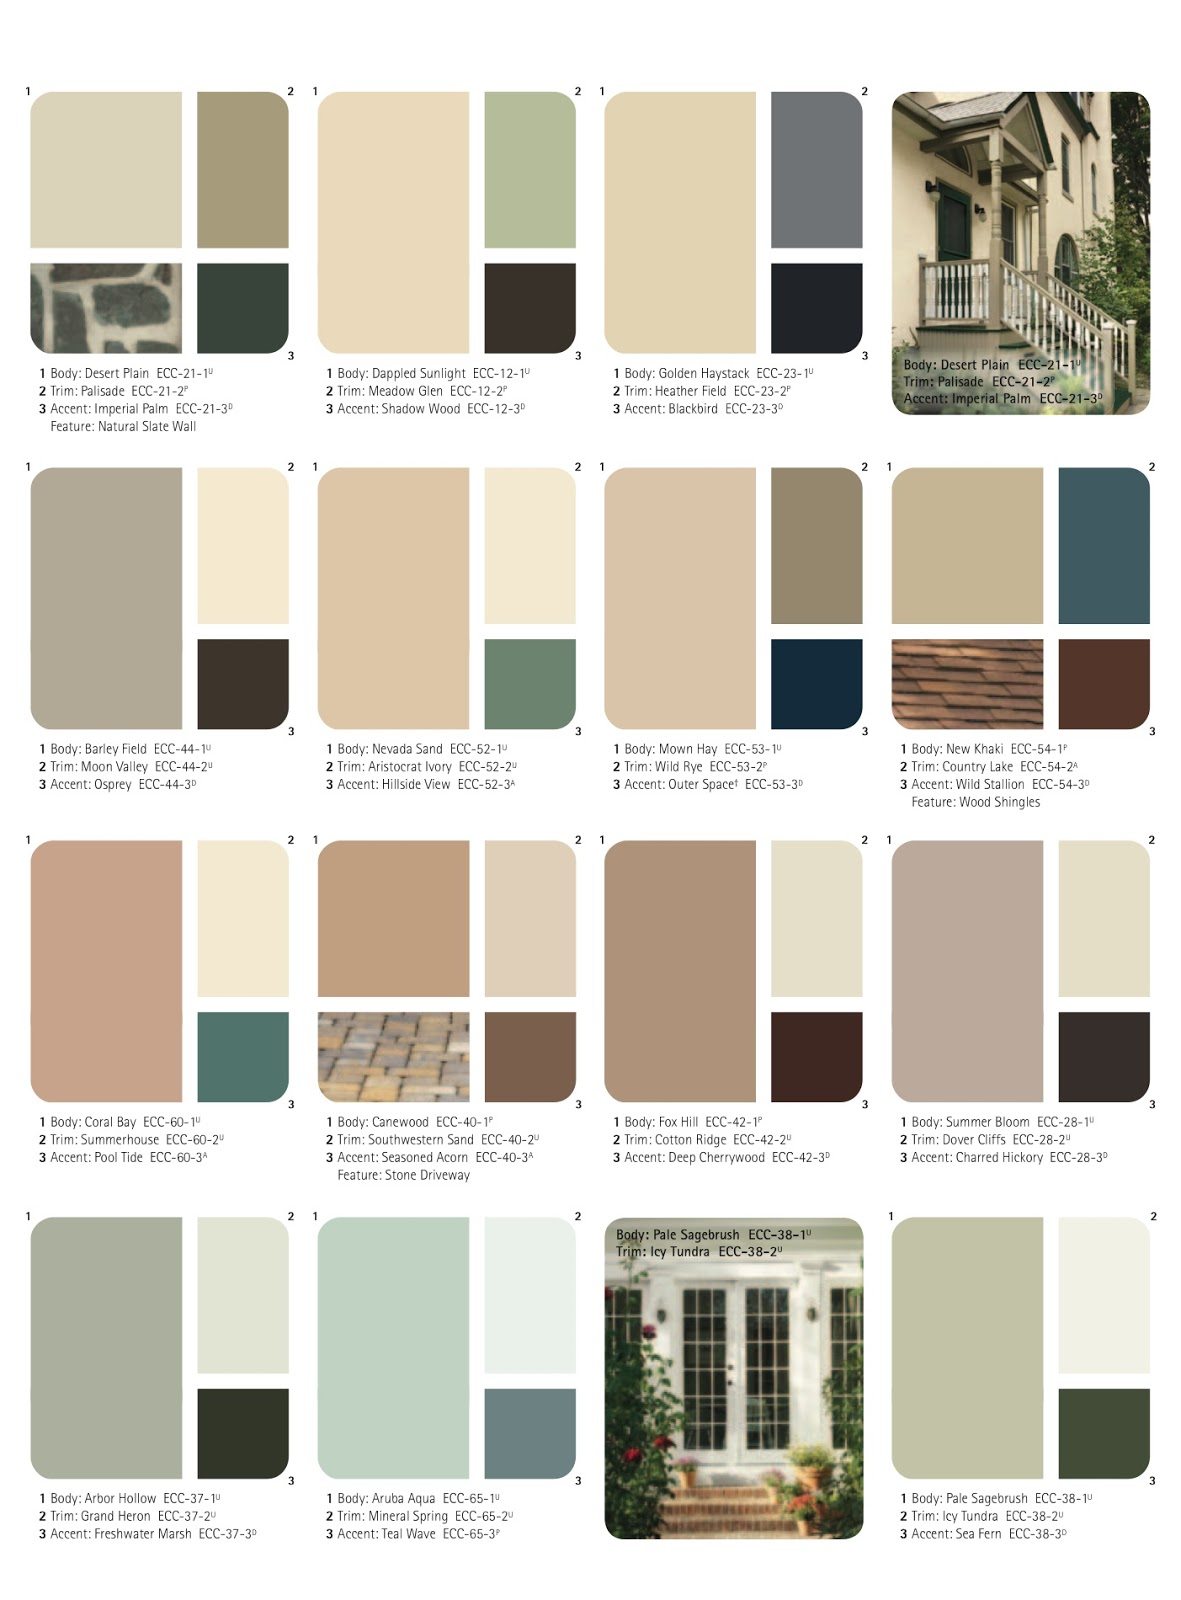 Ange 39 s dollhouse choosing the exterior color scheme - House painting colors exterior schemes collection ...